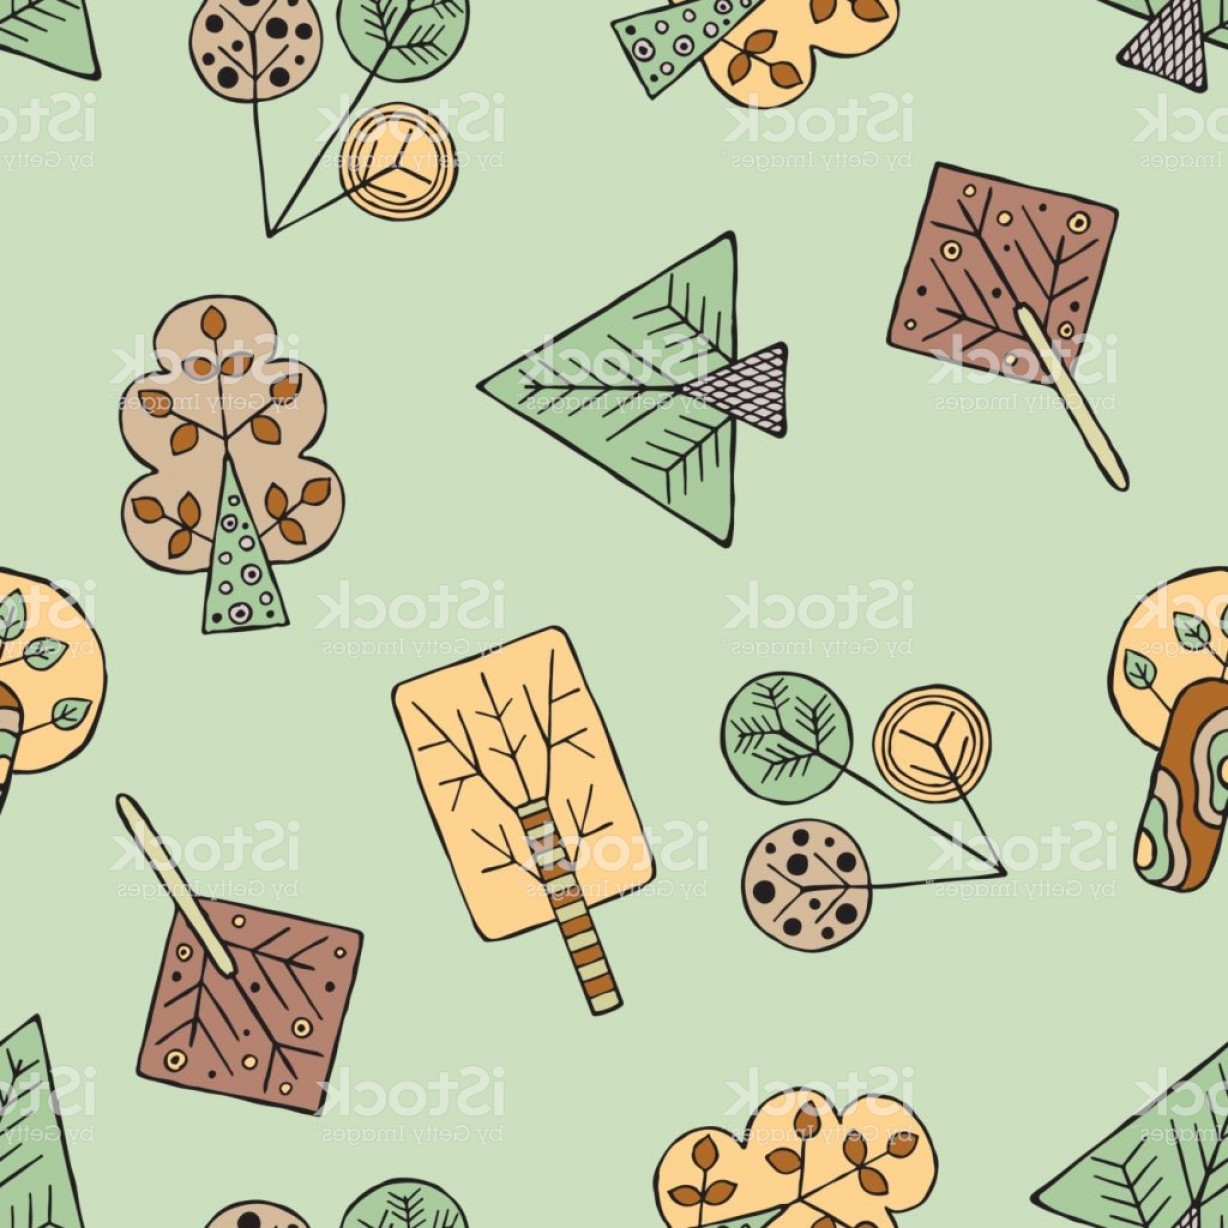 Tribal Vector Art Trees: Vector Hand Drawn Seamless Pattern Decorative Stylized Childish Trees Doodle Style Gm